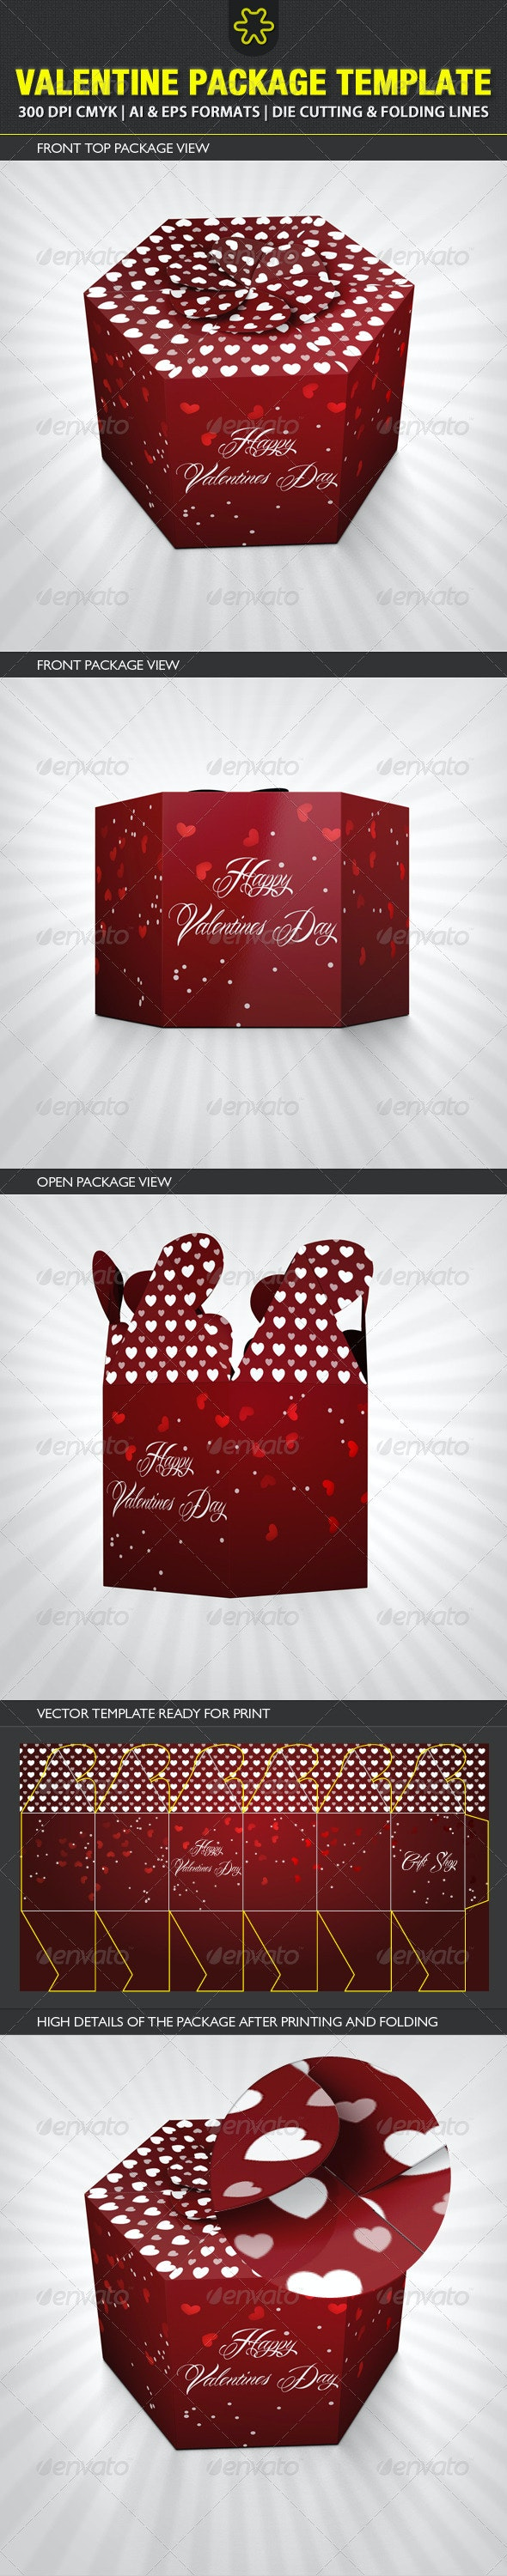 Valentine Package Template - Packaging Print Templates